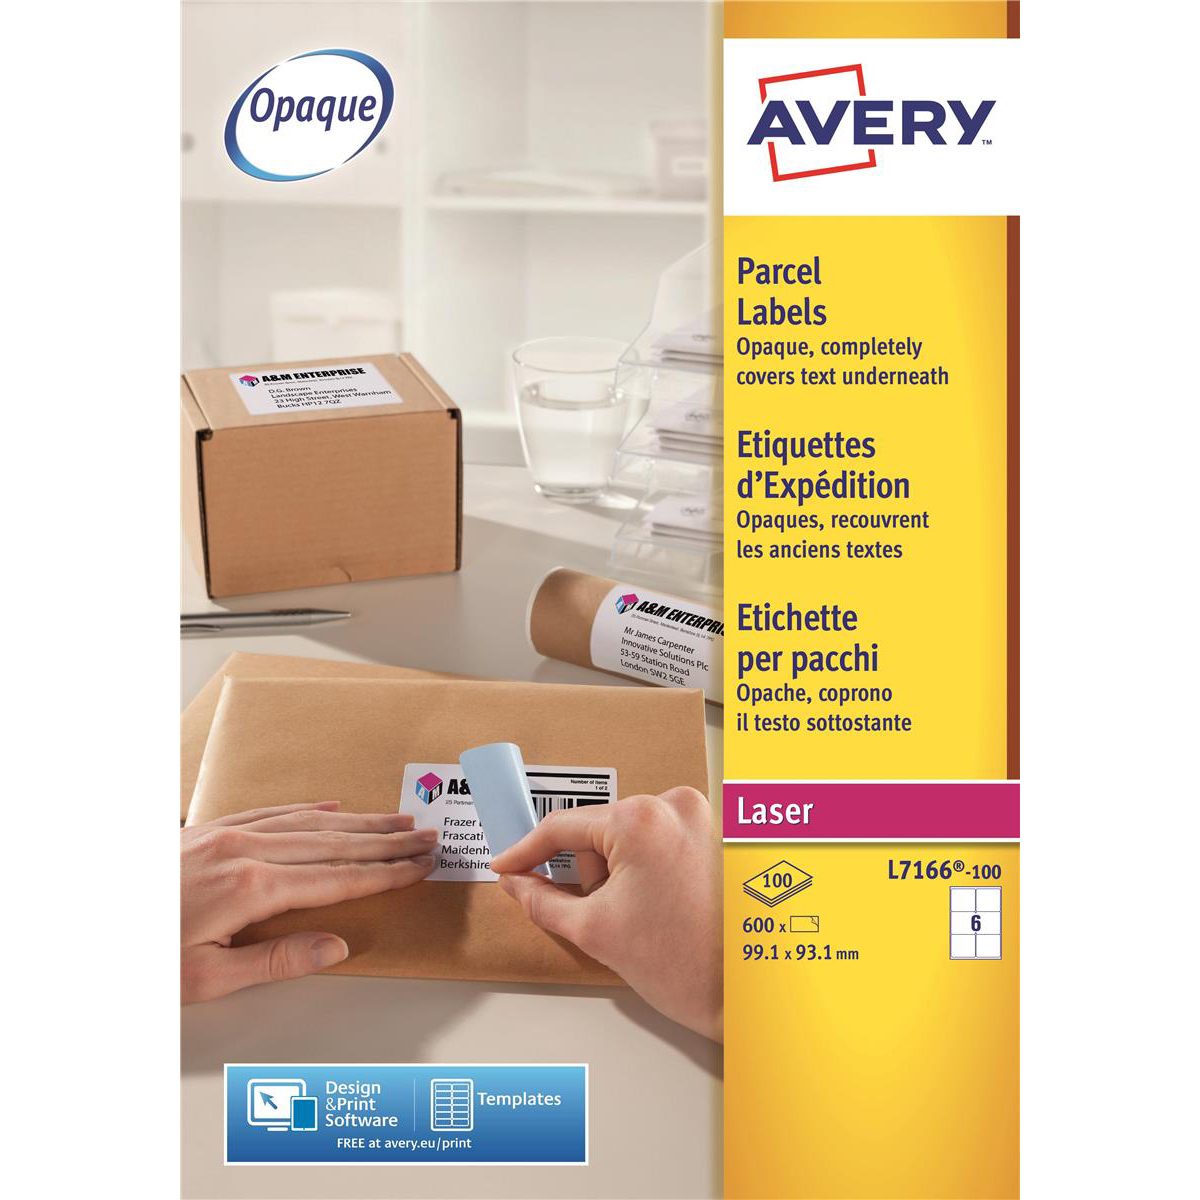 Avery Addressing Labels Laser Jam-free 6 per Sheet 99.1x93.1mm Opaque Ref L7166-100 [600 Labels]